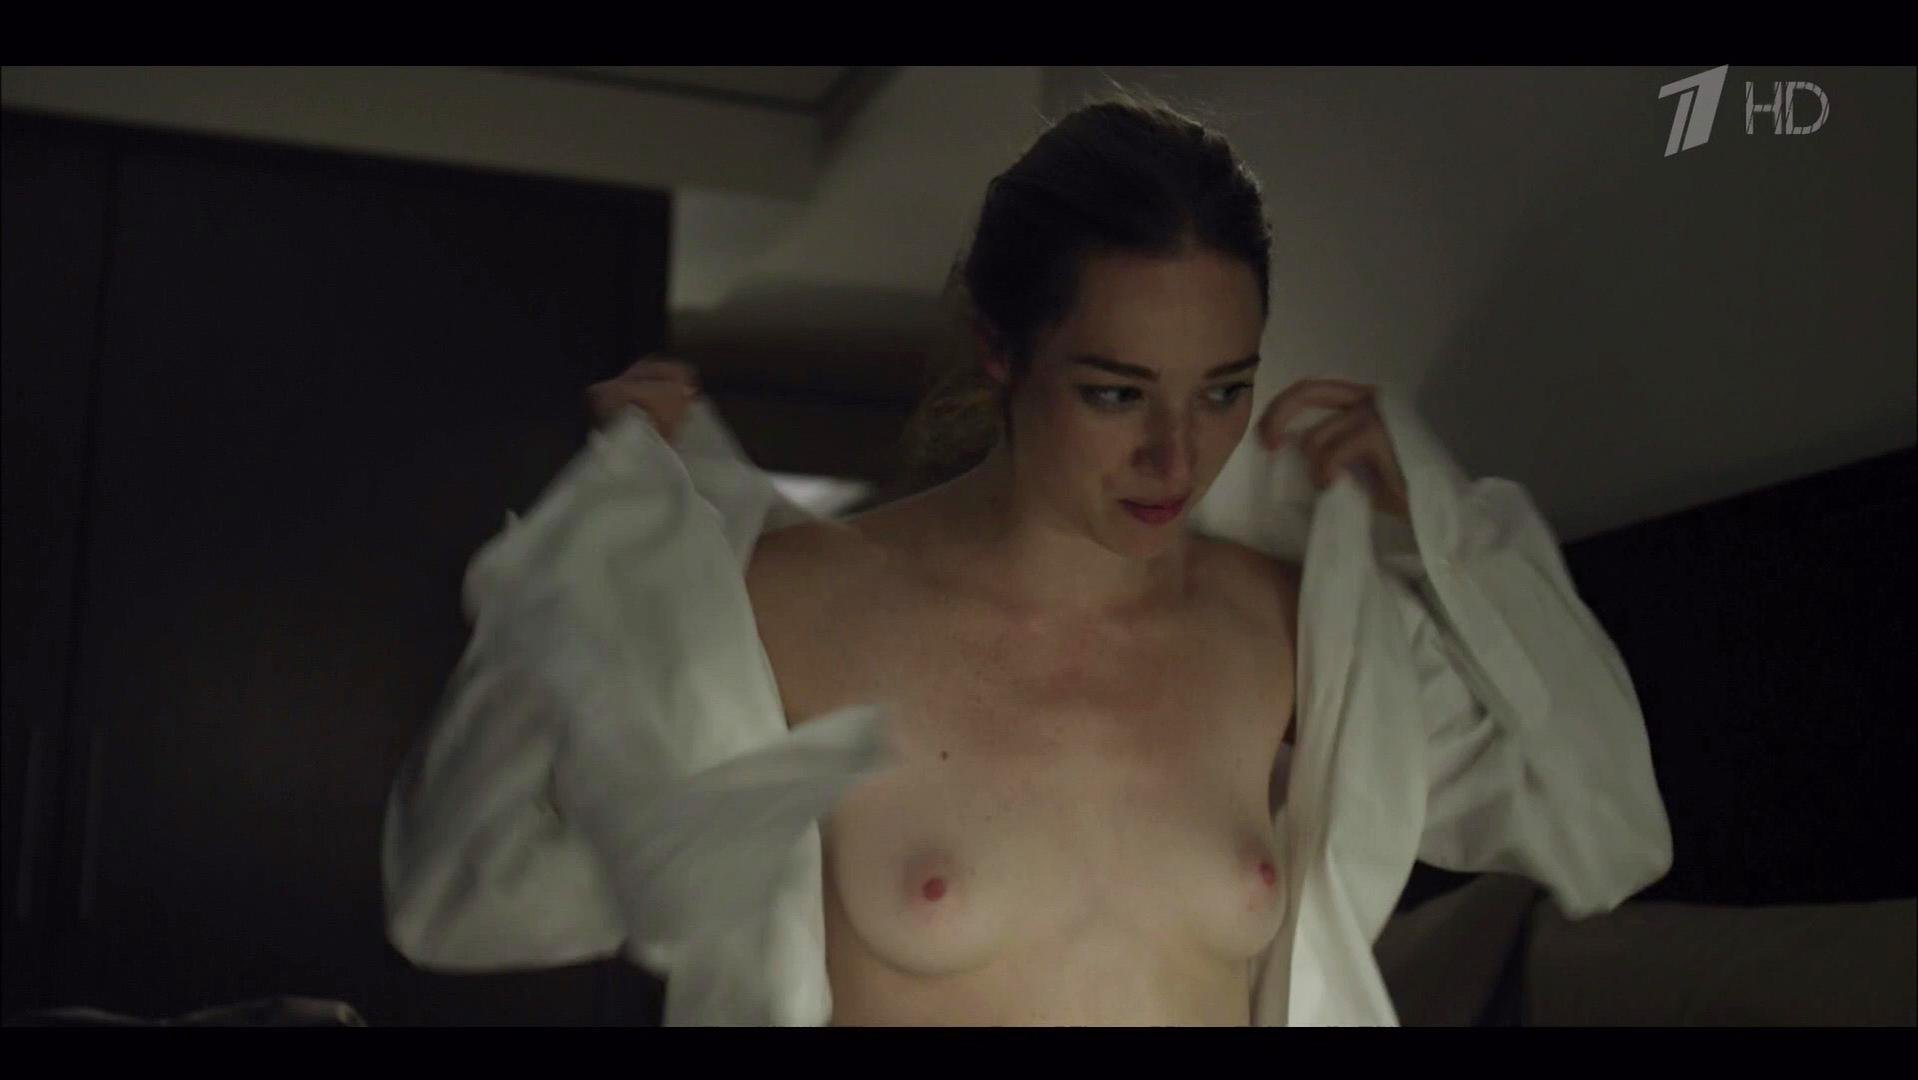 Kristen Connolly nude - House Of Cards s01e01 (2013)